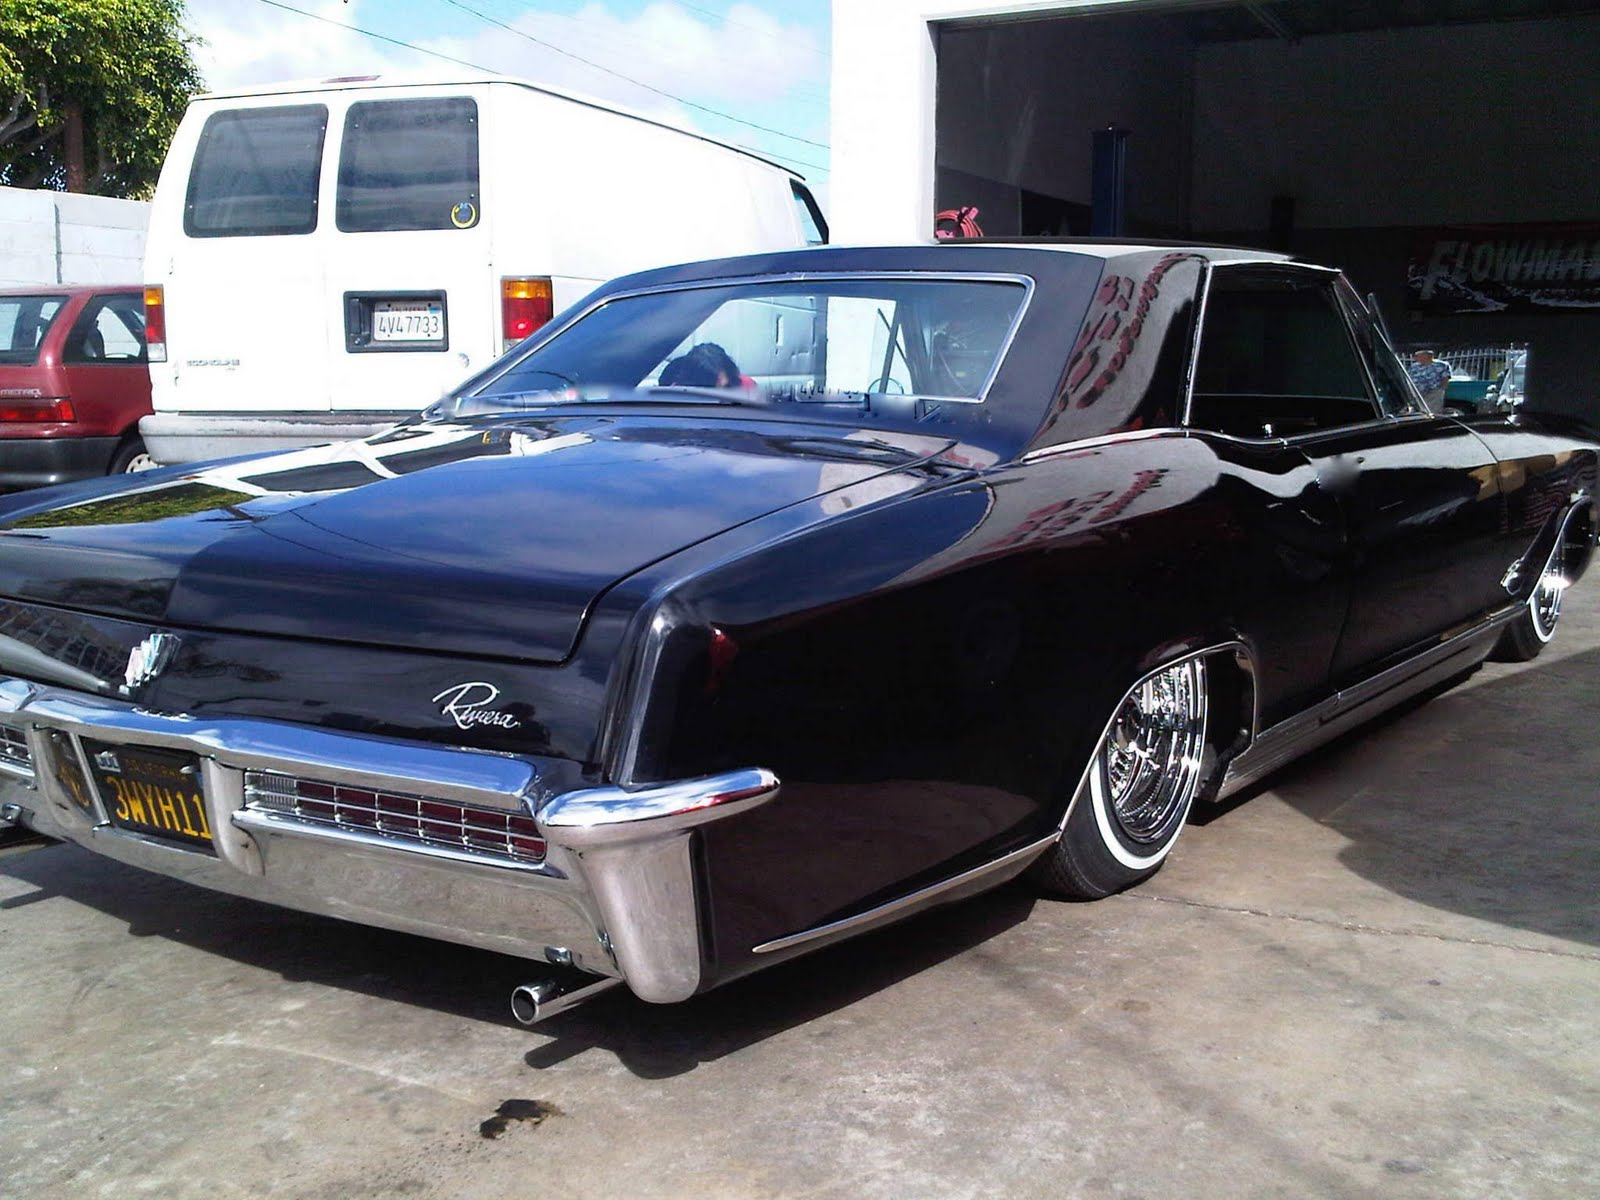 1965-Buick-Riviera-Gran-Sport-48 1965 Buick Riviera Gran Sport For Sale